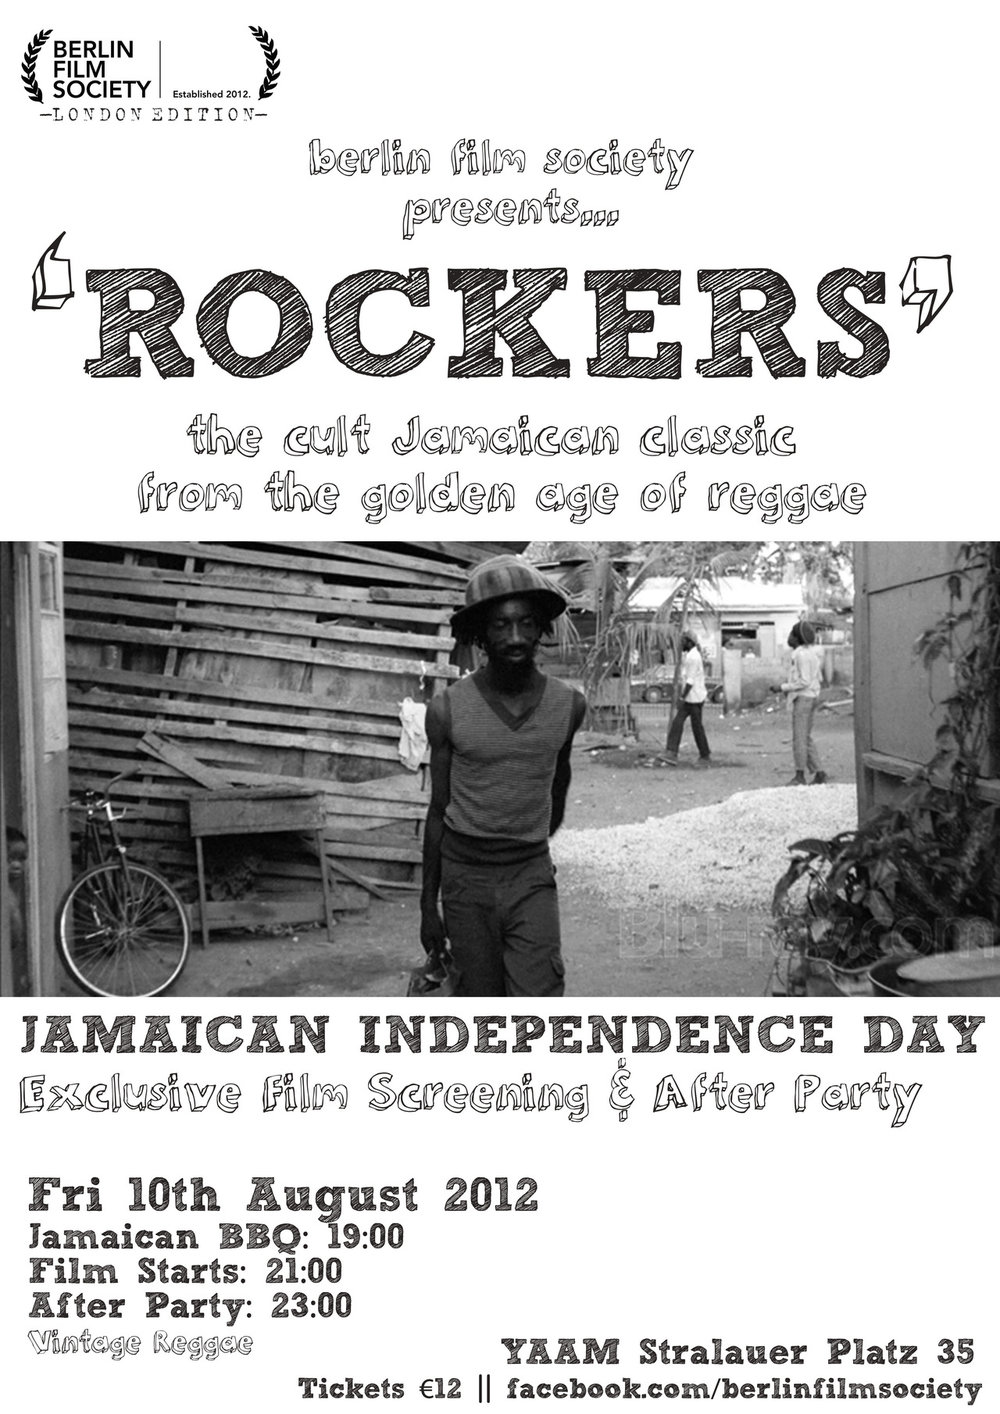 "UNLIKE CITY GUIDES Berlin Film Society - Rockers Fifty years ago this week, Jamaica gained independence from the British. Celebrate in style Friday night as the Berlin Film Society shows an exclusive screening of the 1978 cult classic, ""Rockers,"" at YAAM. Show up early to feast on some delish Jamaican BBQ before the 21:00 start time. Then let the soundtrack get you hyped for a vintage reggae after party with DJs Barney Millah and Stefan from Such A Sound. An entrance fee of 12€ gets you in on all the action."